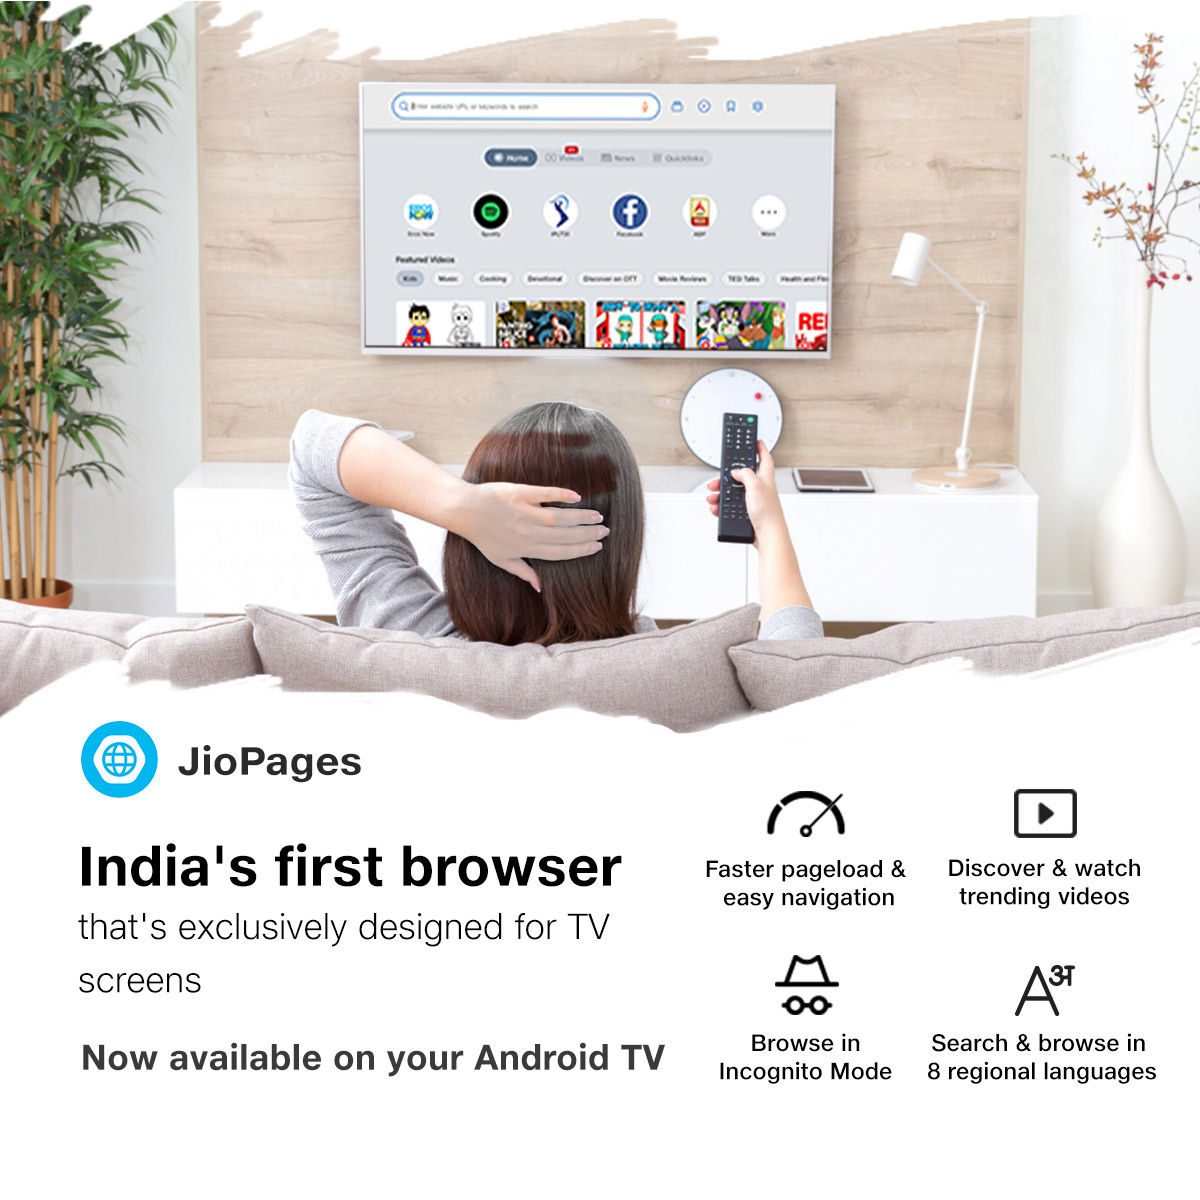 JioPages for Android TV app has been launched